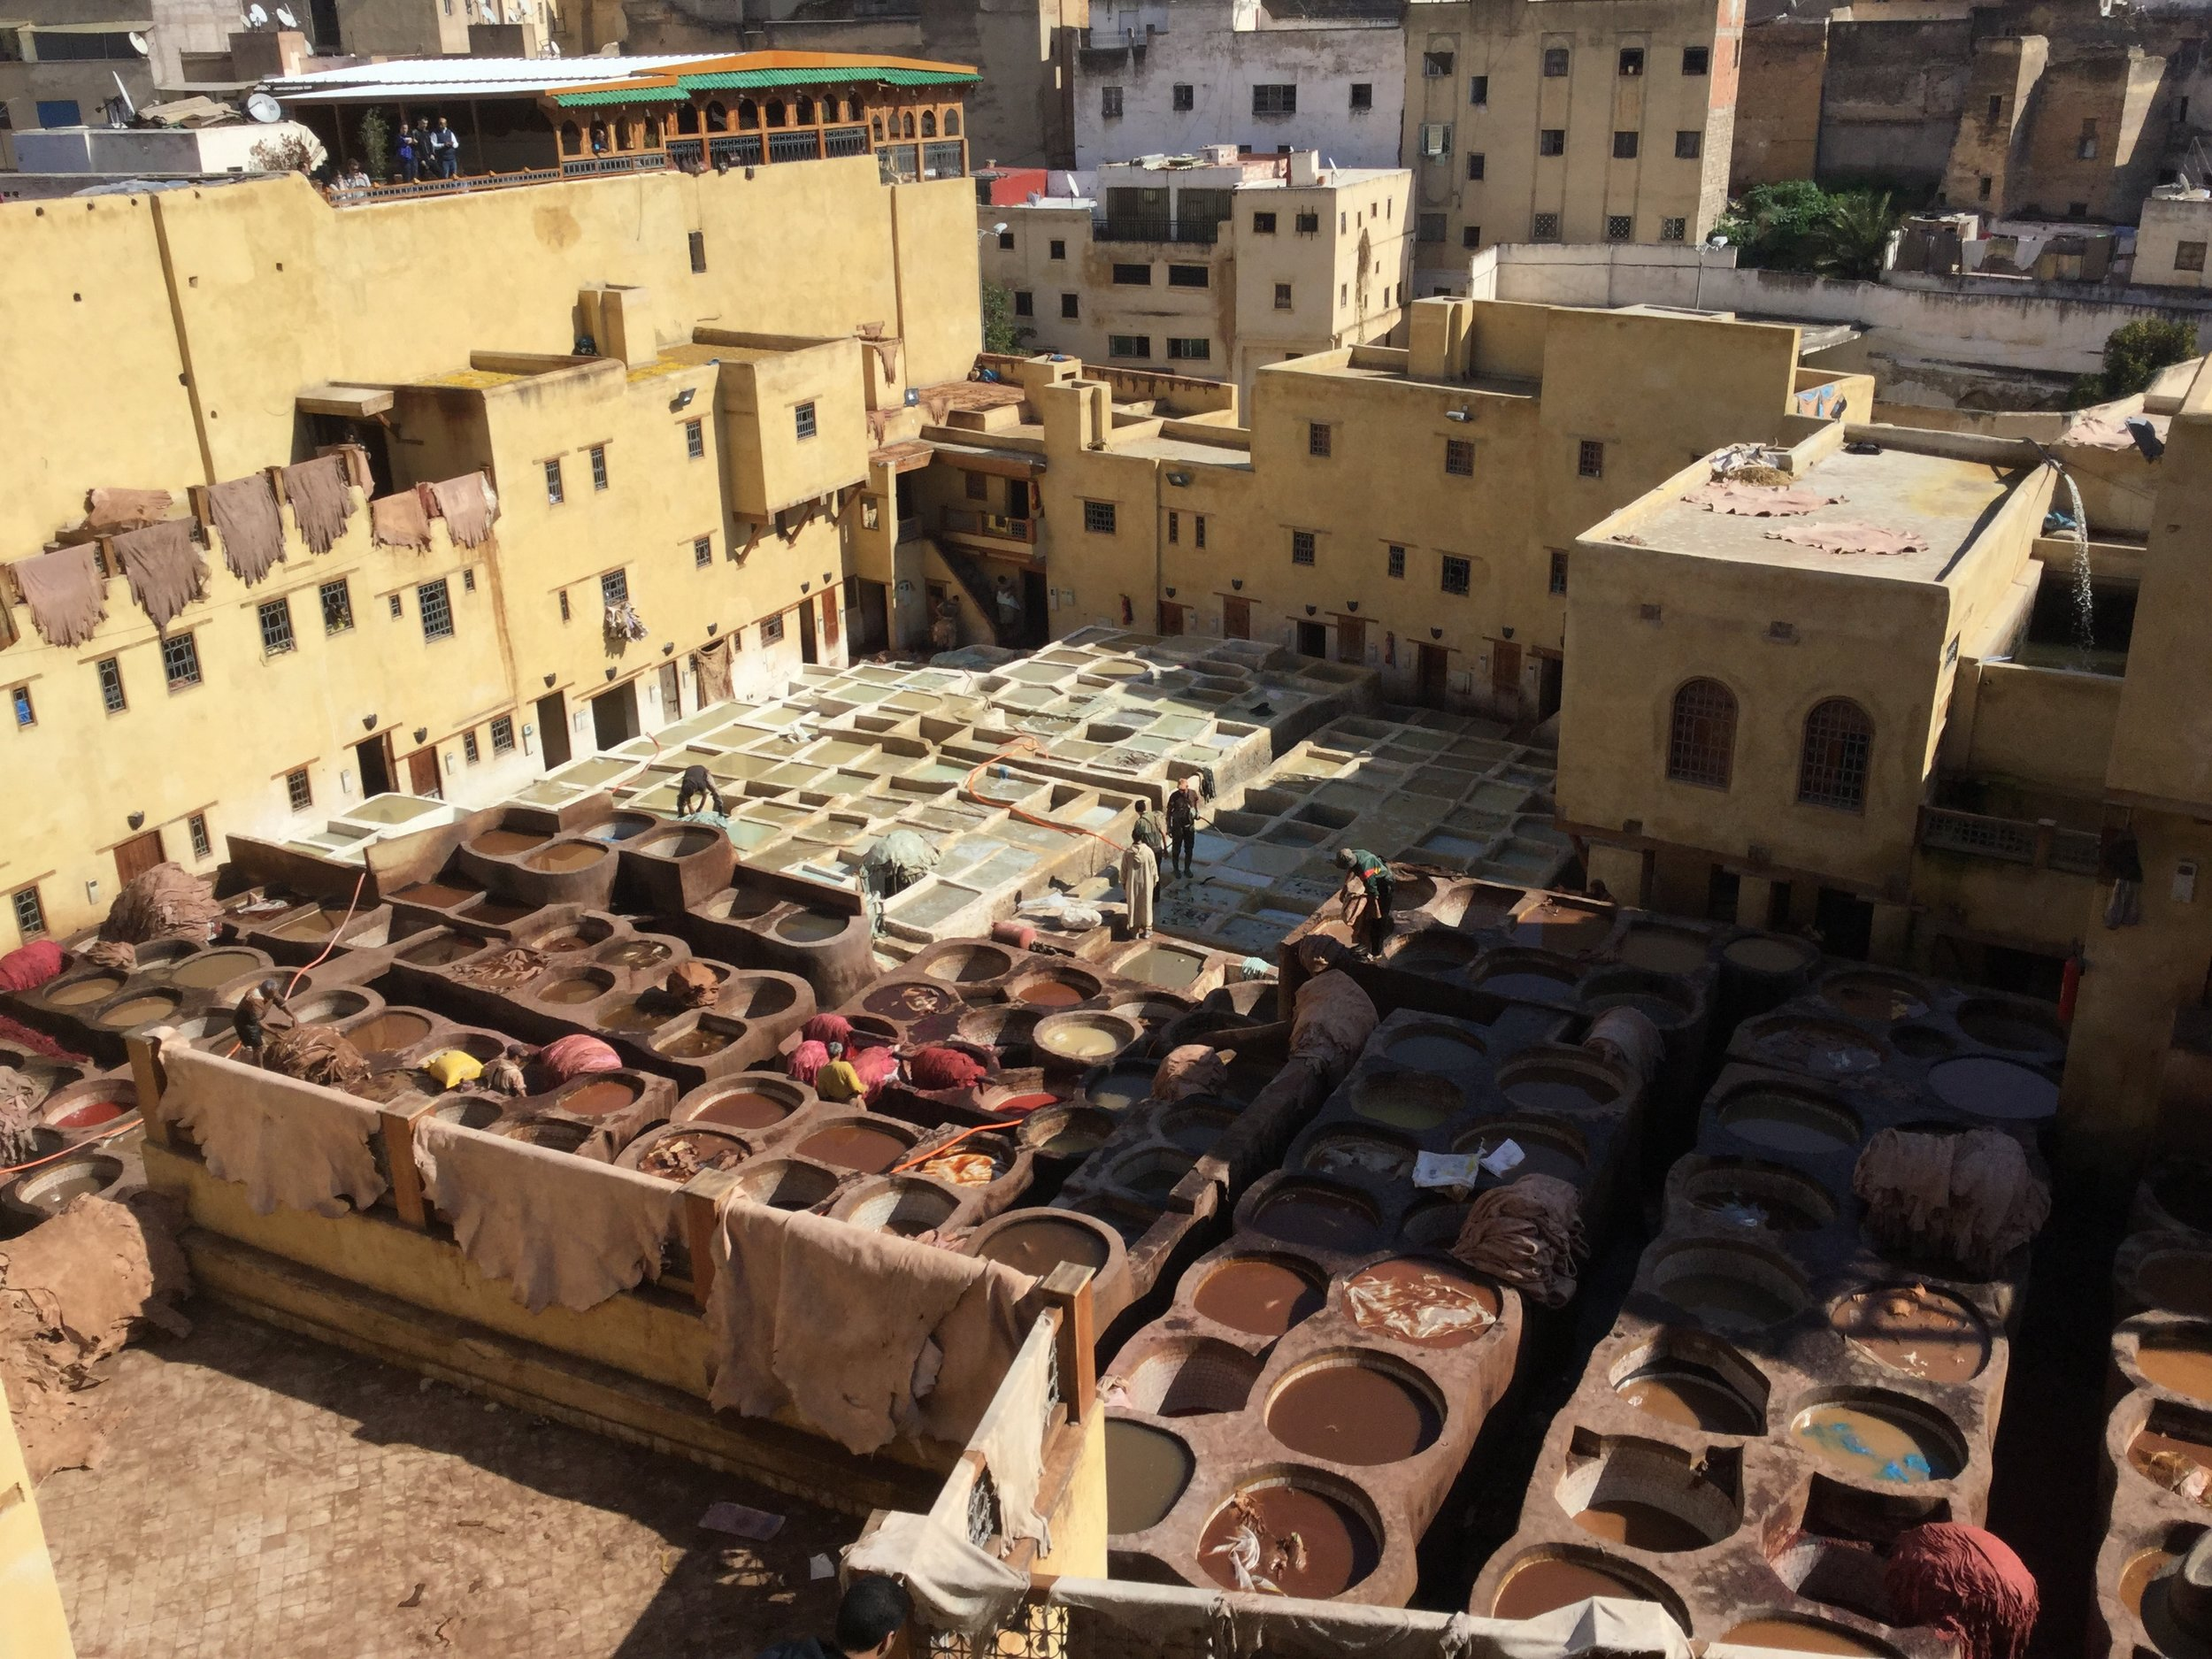 View into the tanneries. Leatherworks are superb here, and all the materials are local. The leather comes mainly from camels, sheep and cows.